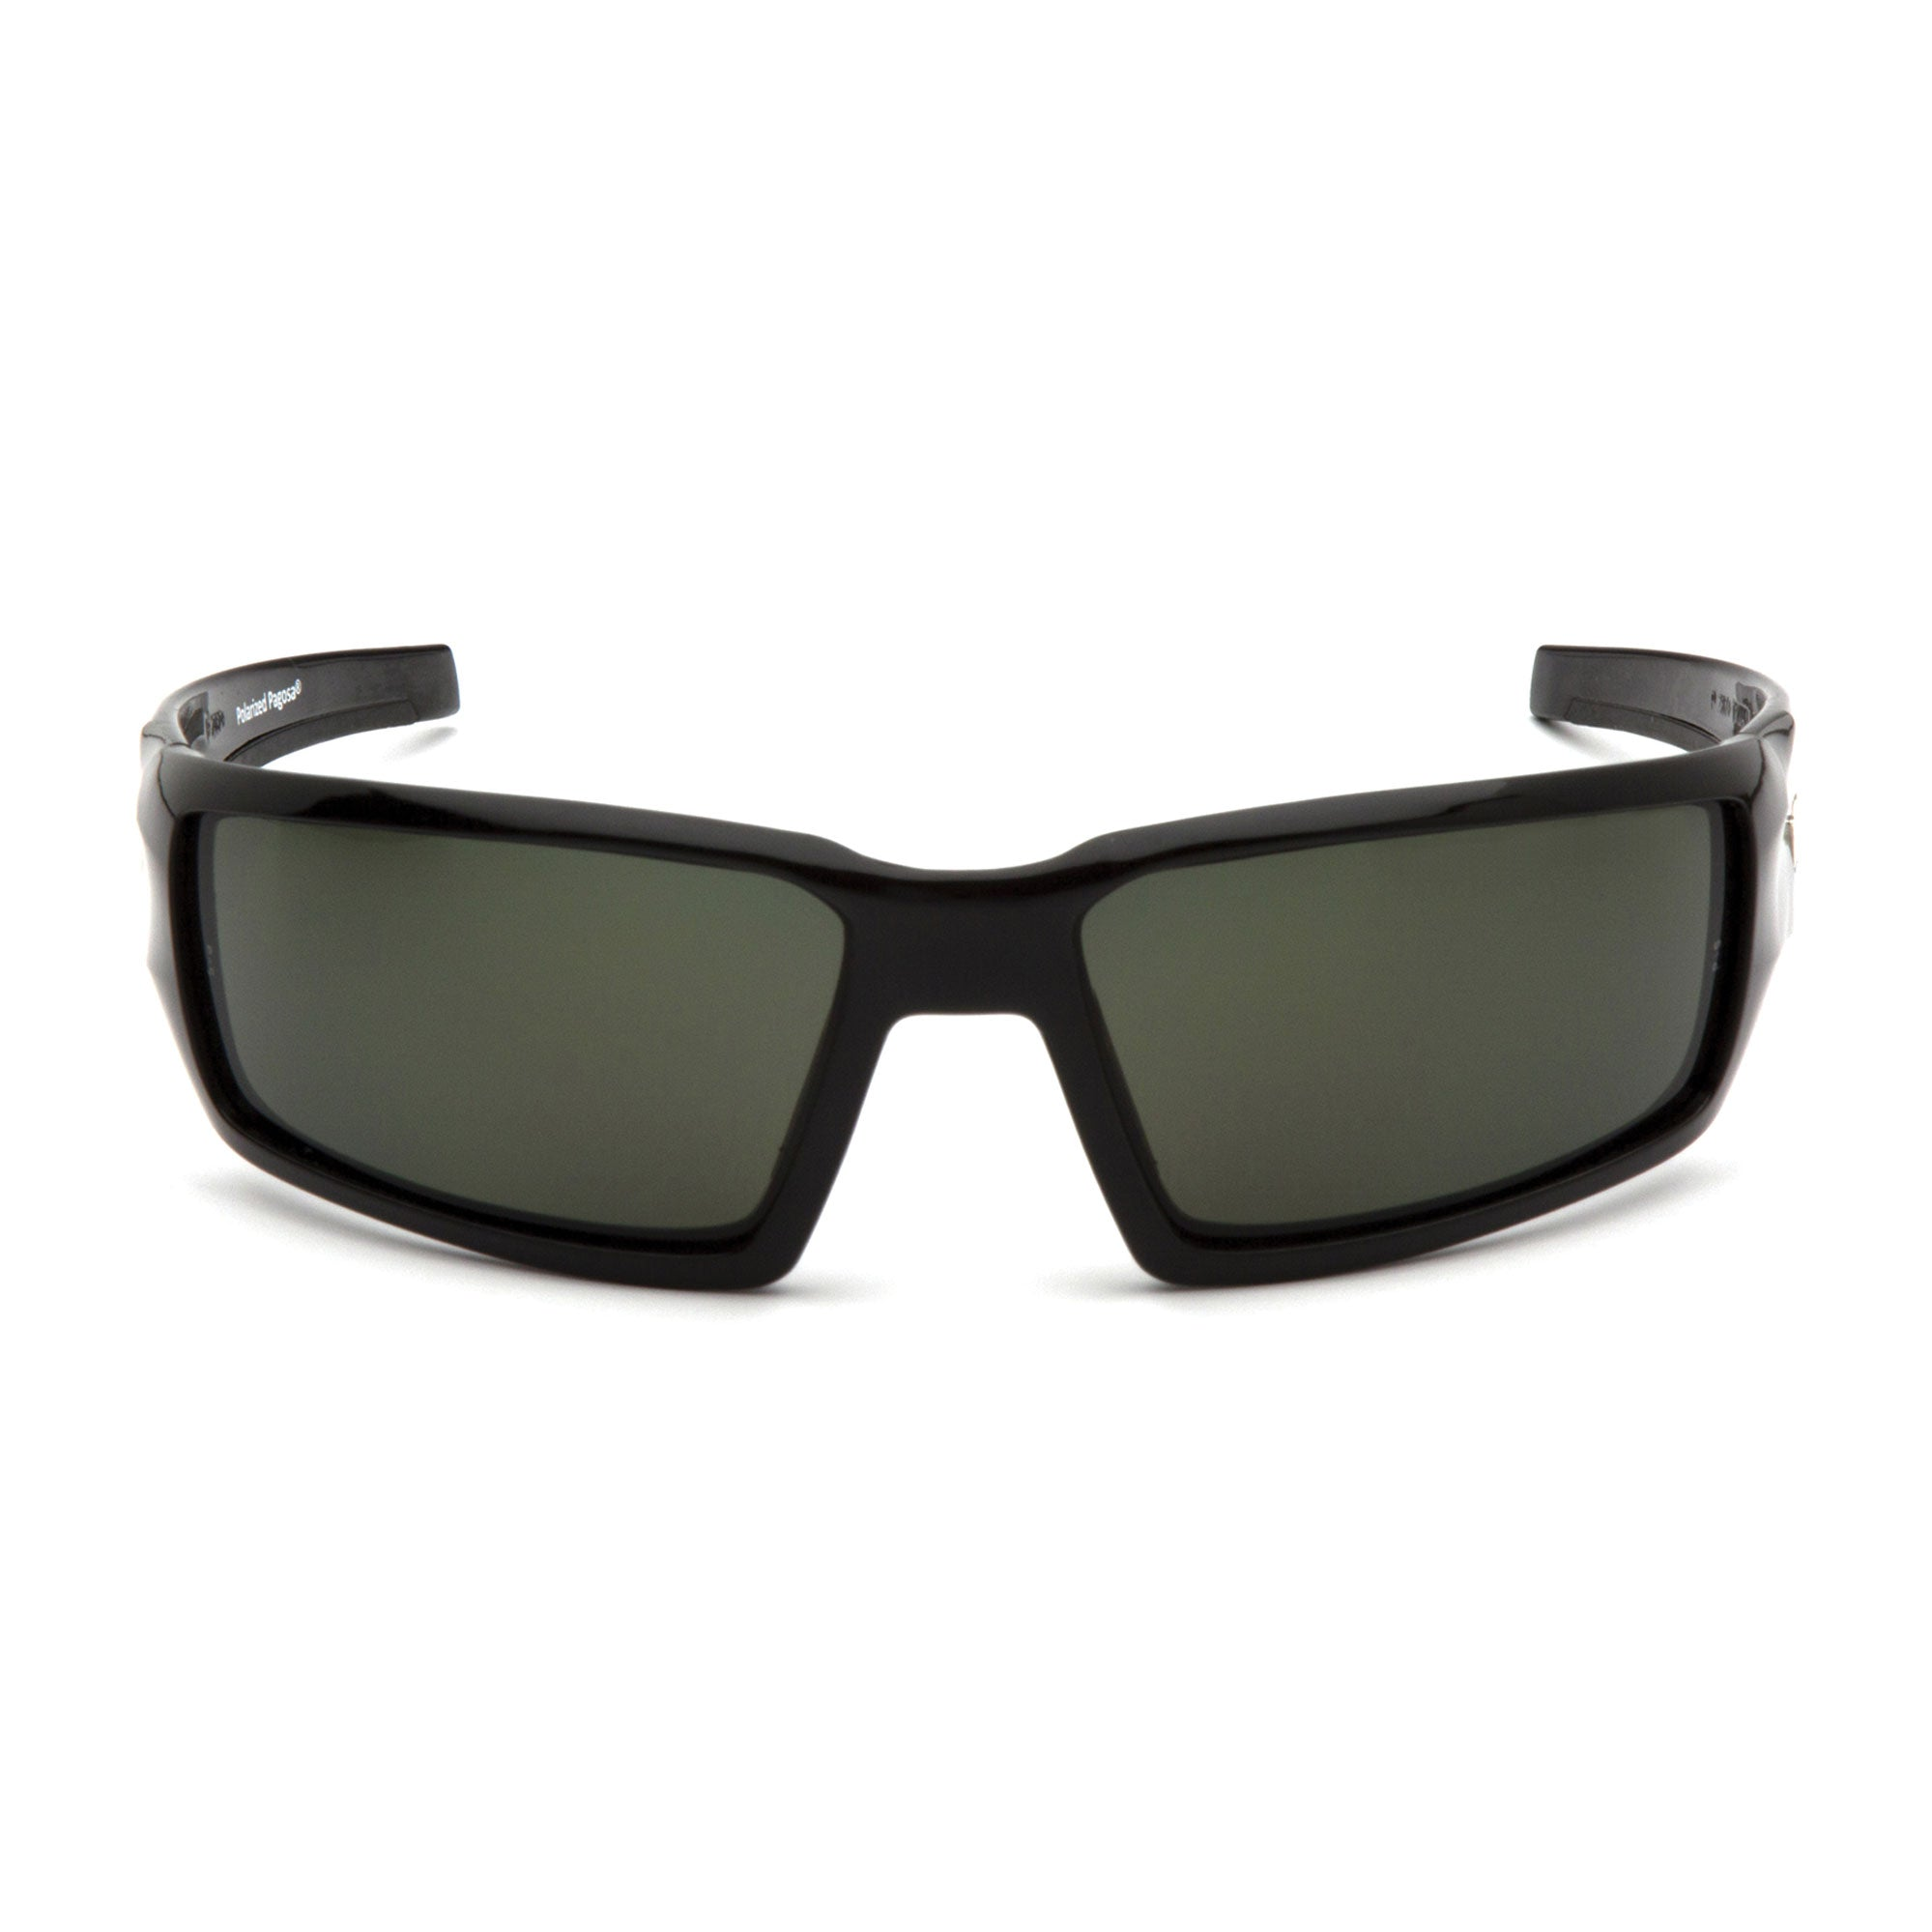 VG Pagosa Polarized Glasses